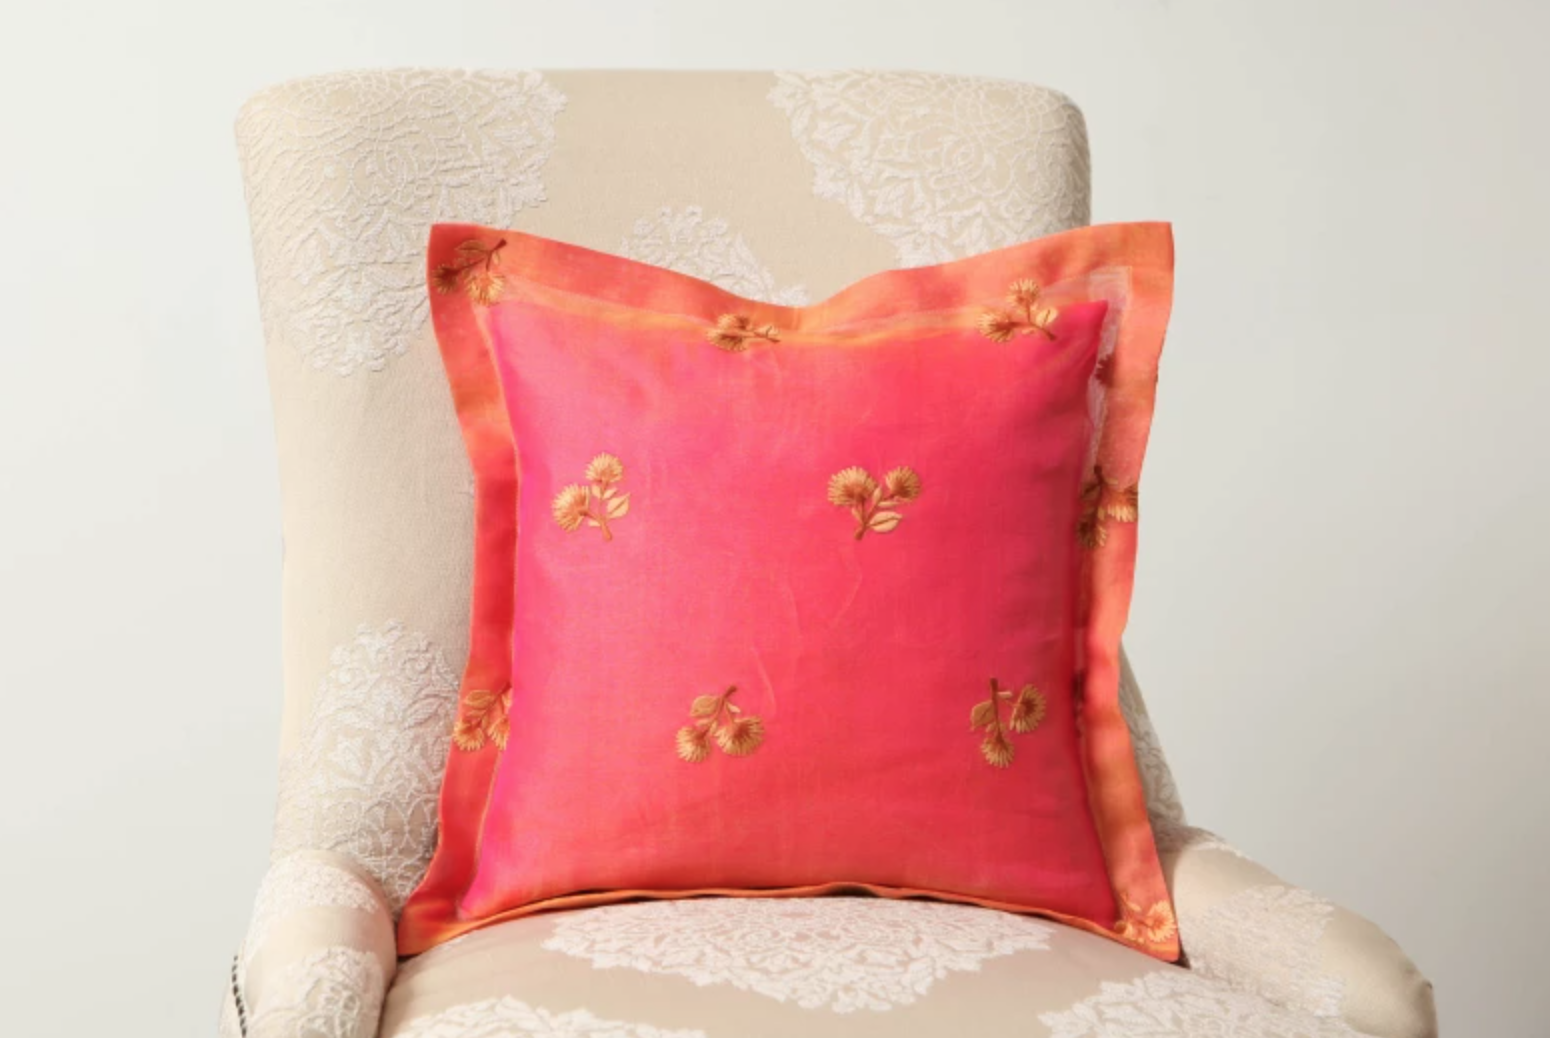 pink and orange sewn pillow on a cream chair